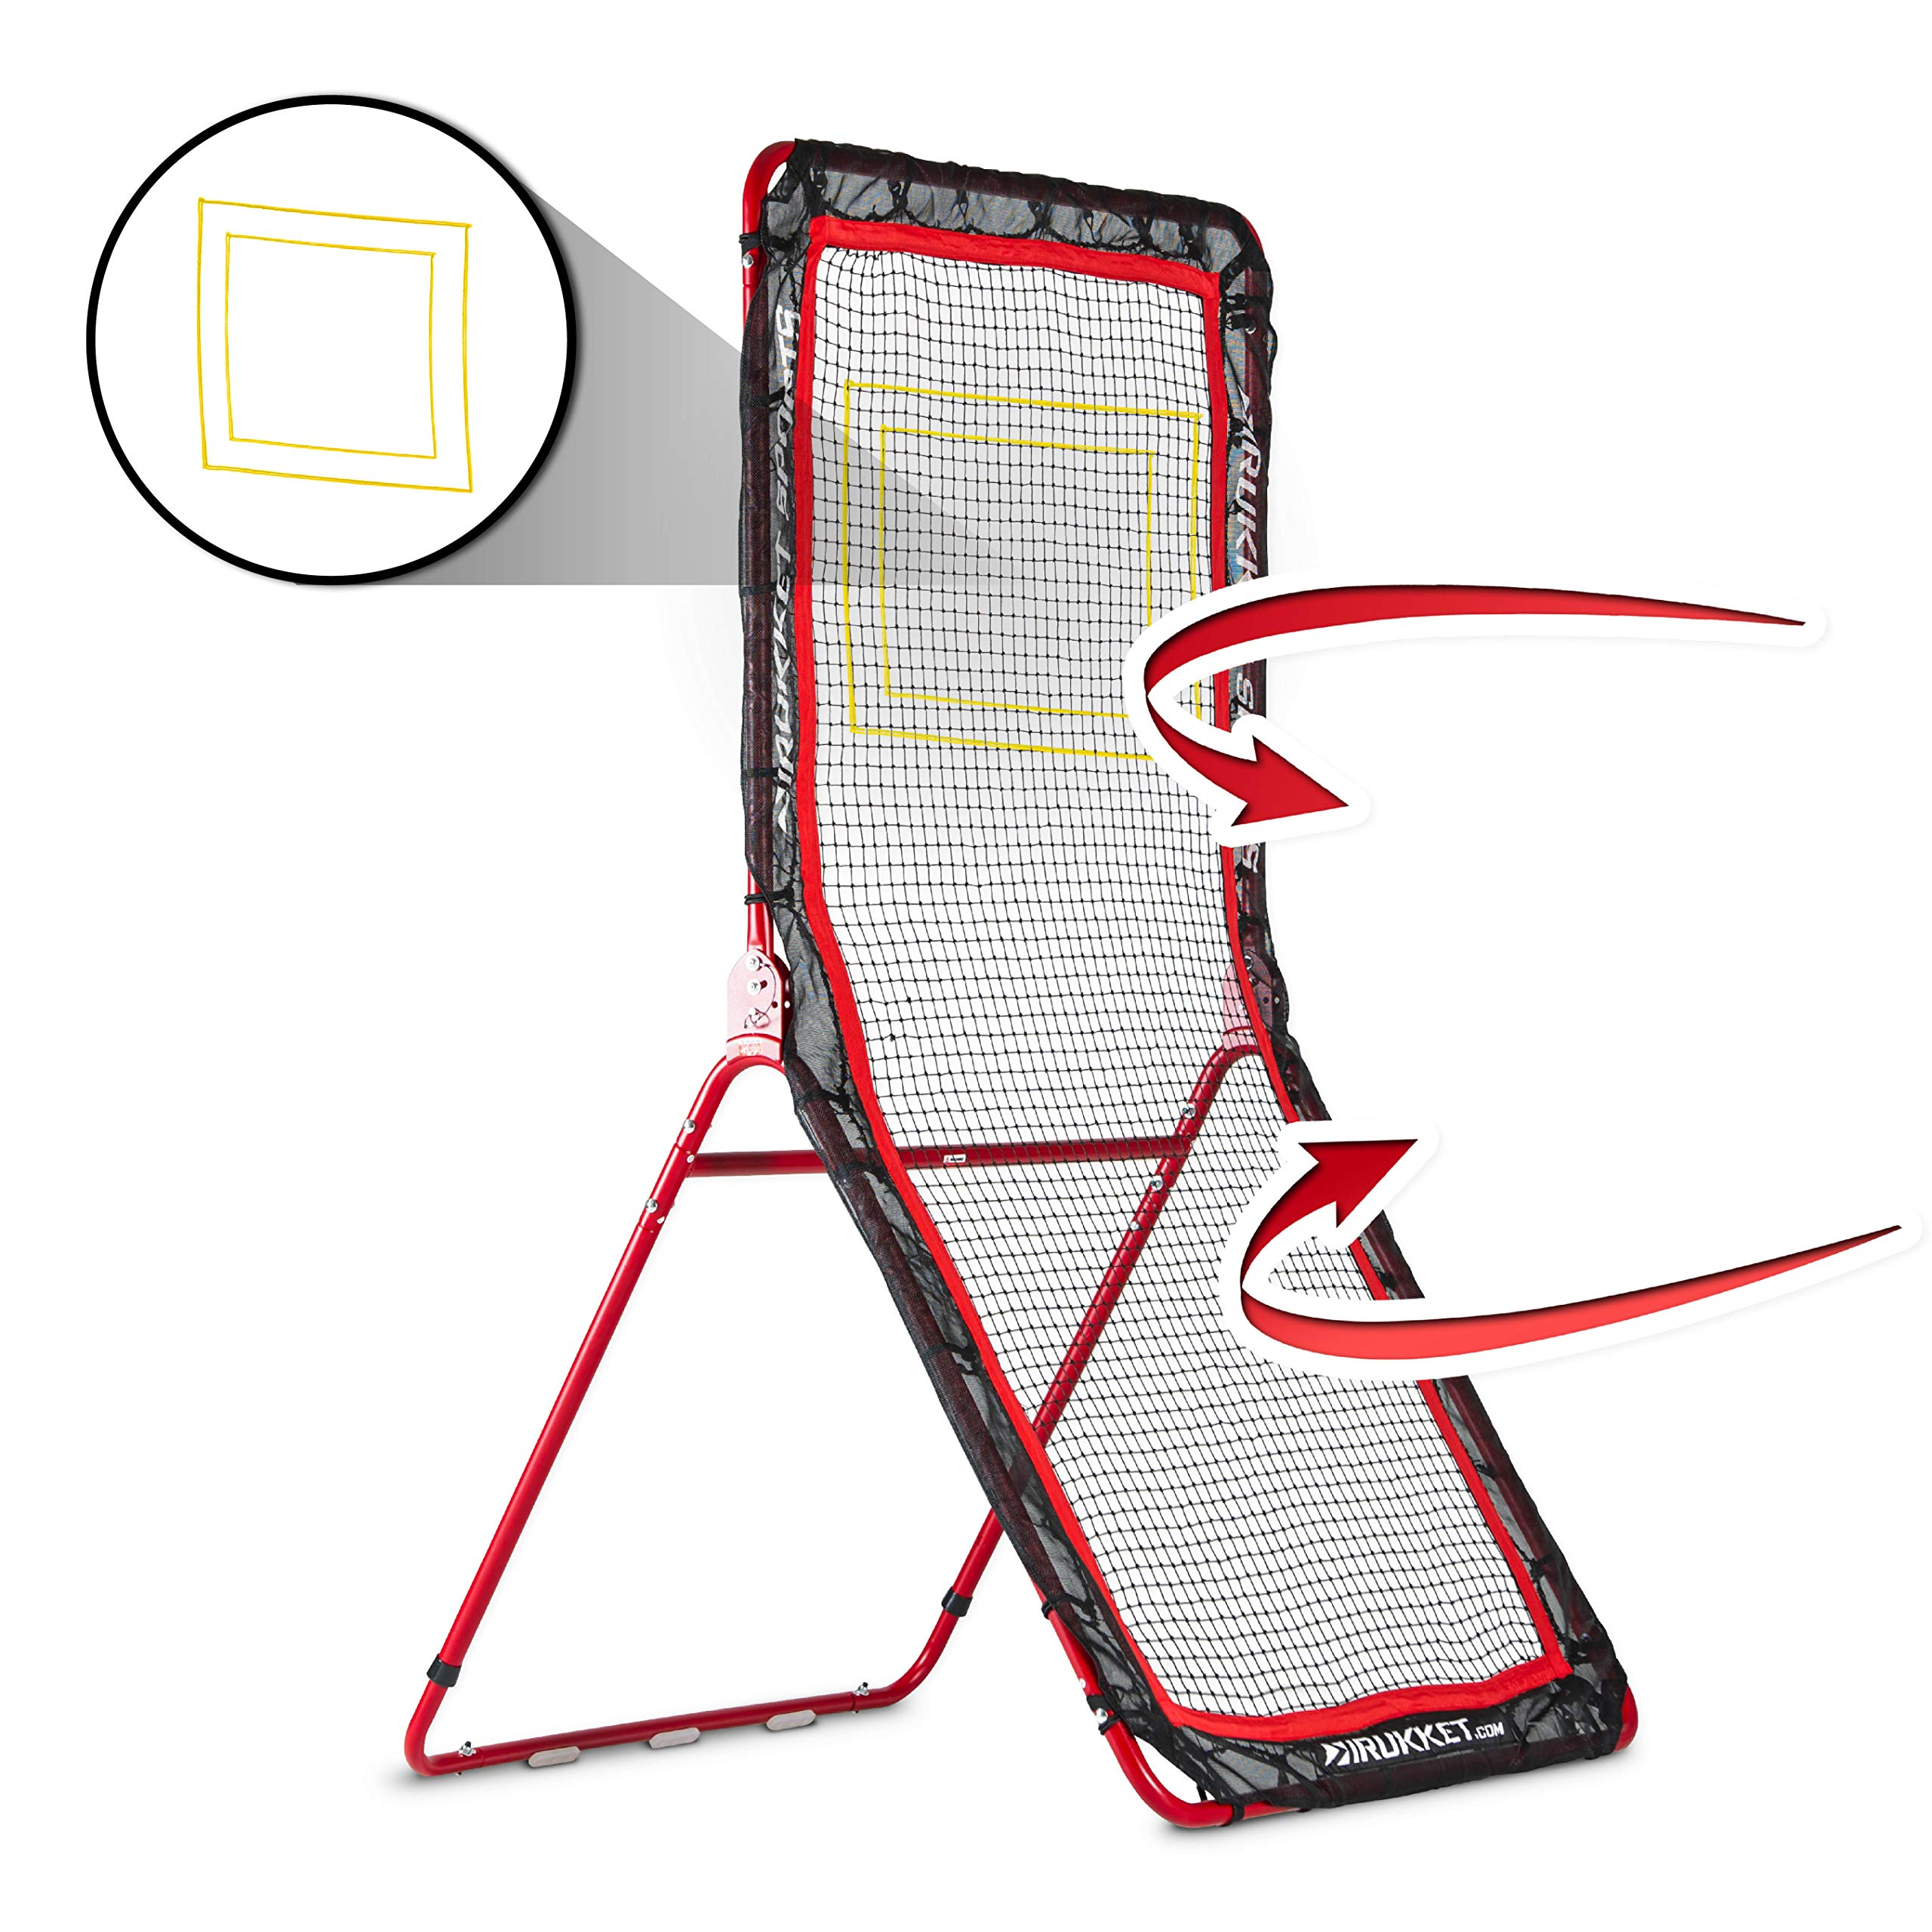 Rukket 4x7ft Lacrosse Rebounder Pitchback Training Screen | Practice Catching, Throwing, and Shooting by Rukket Sports